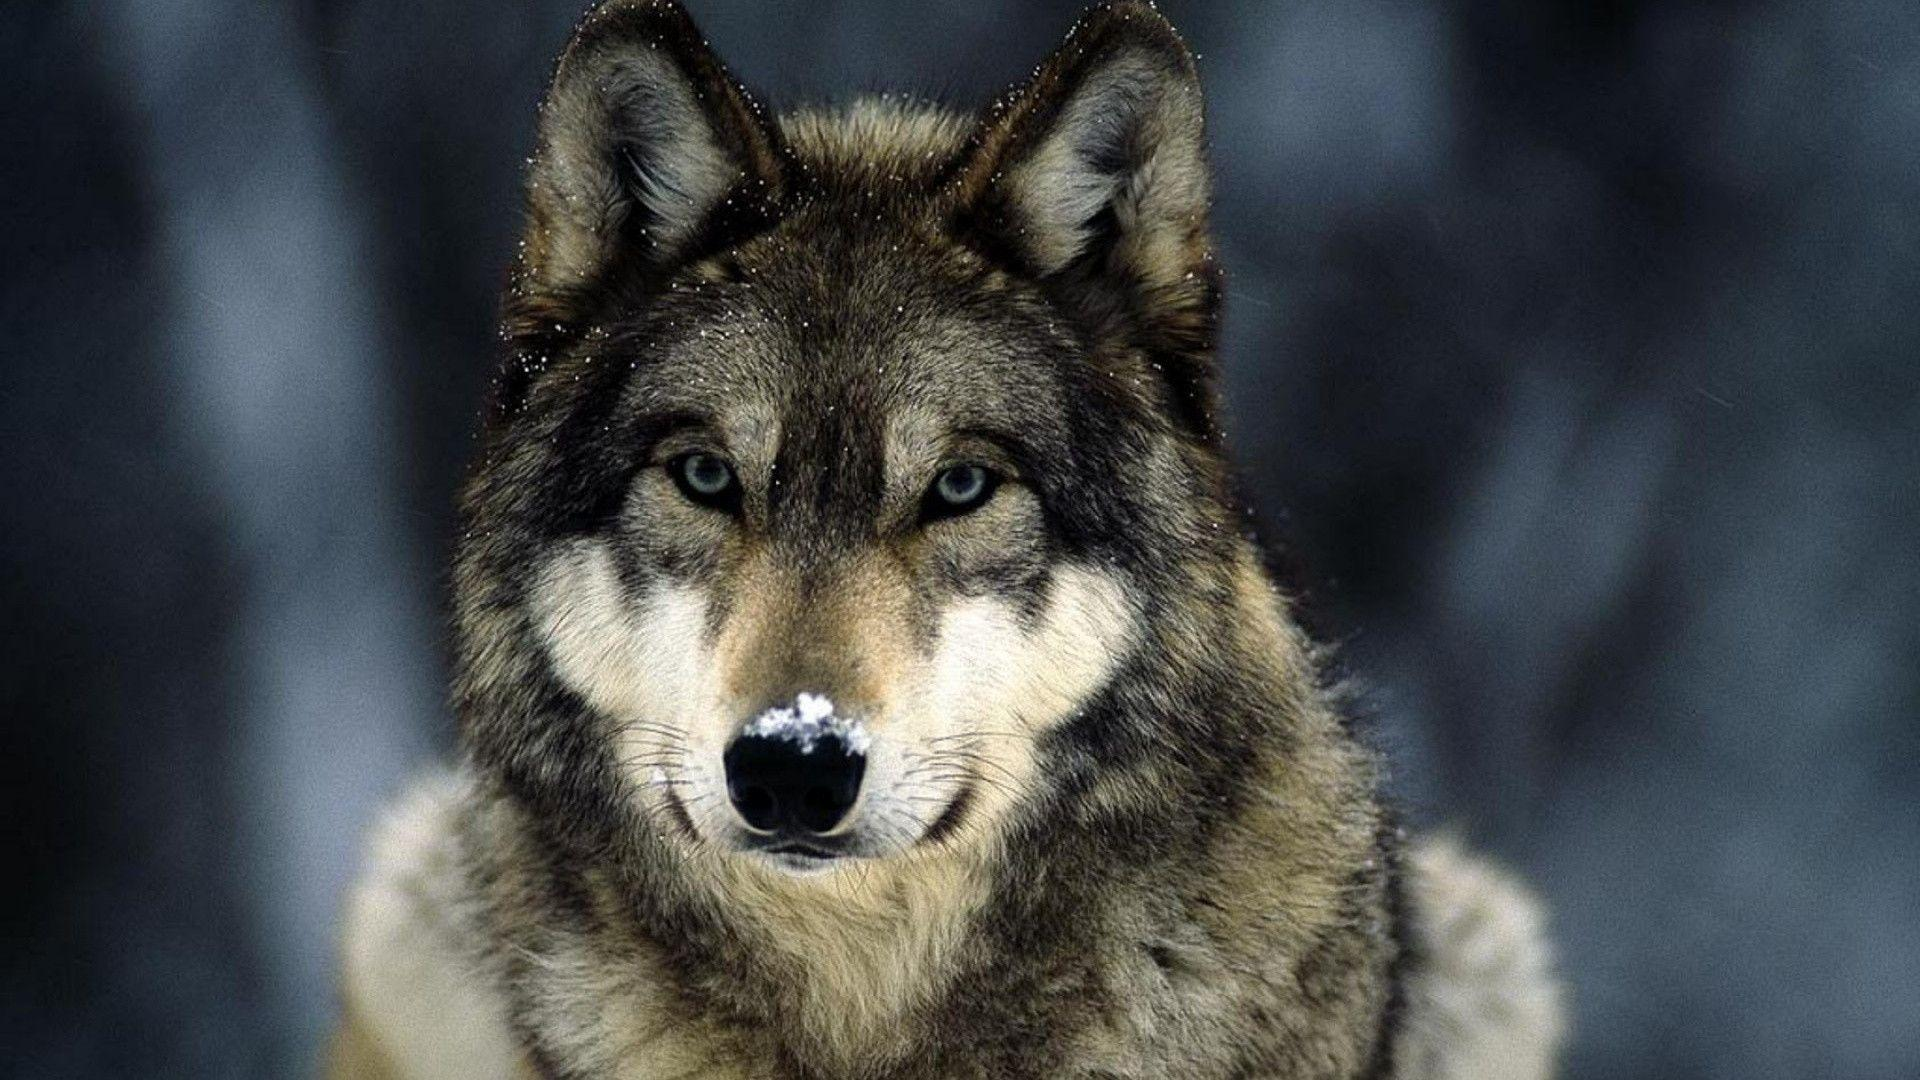 Wallpapers wolf wallpaper reptile animals artleo 1920x1080 px ...